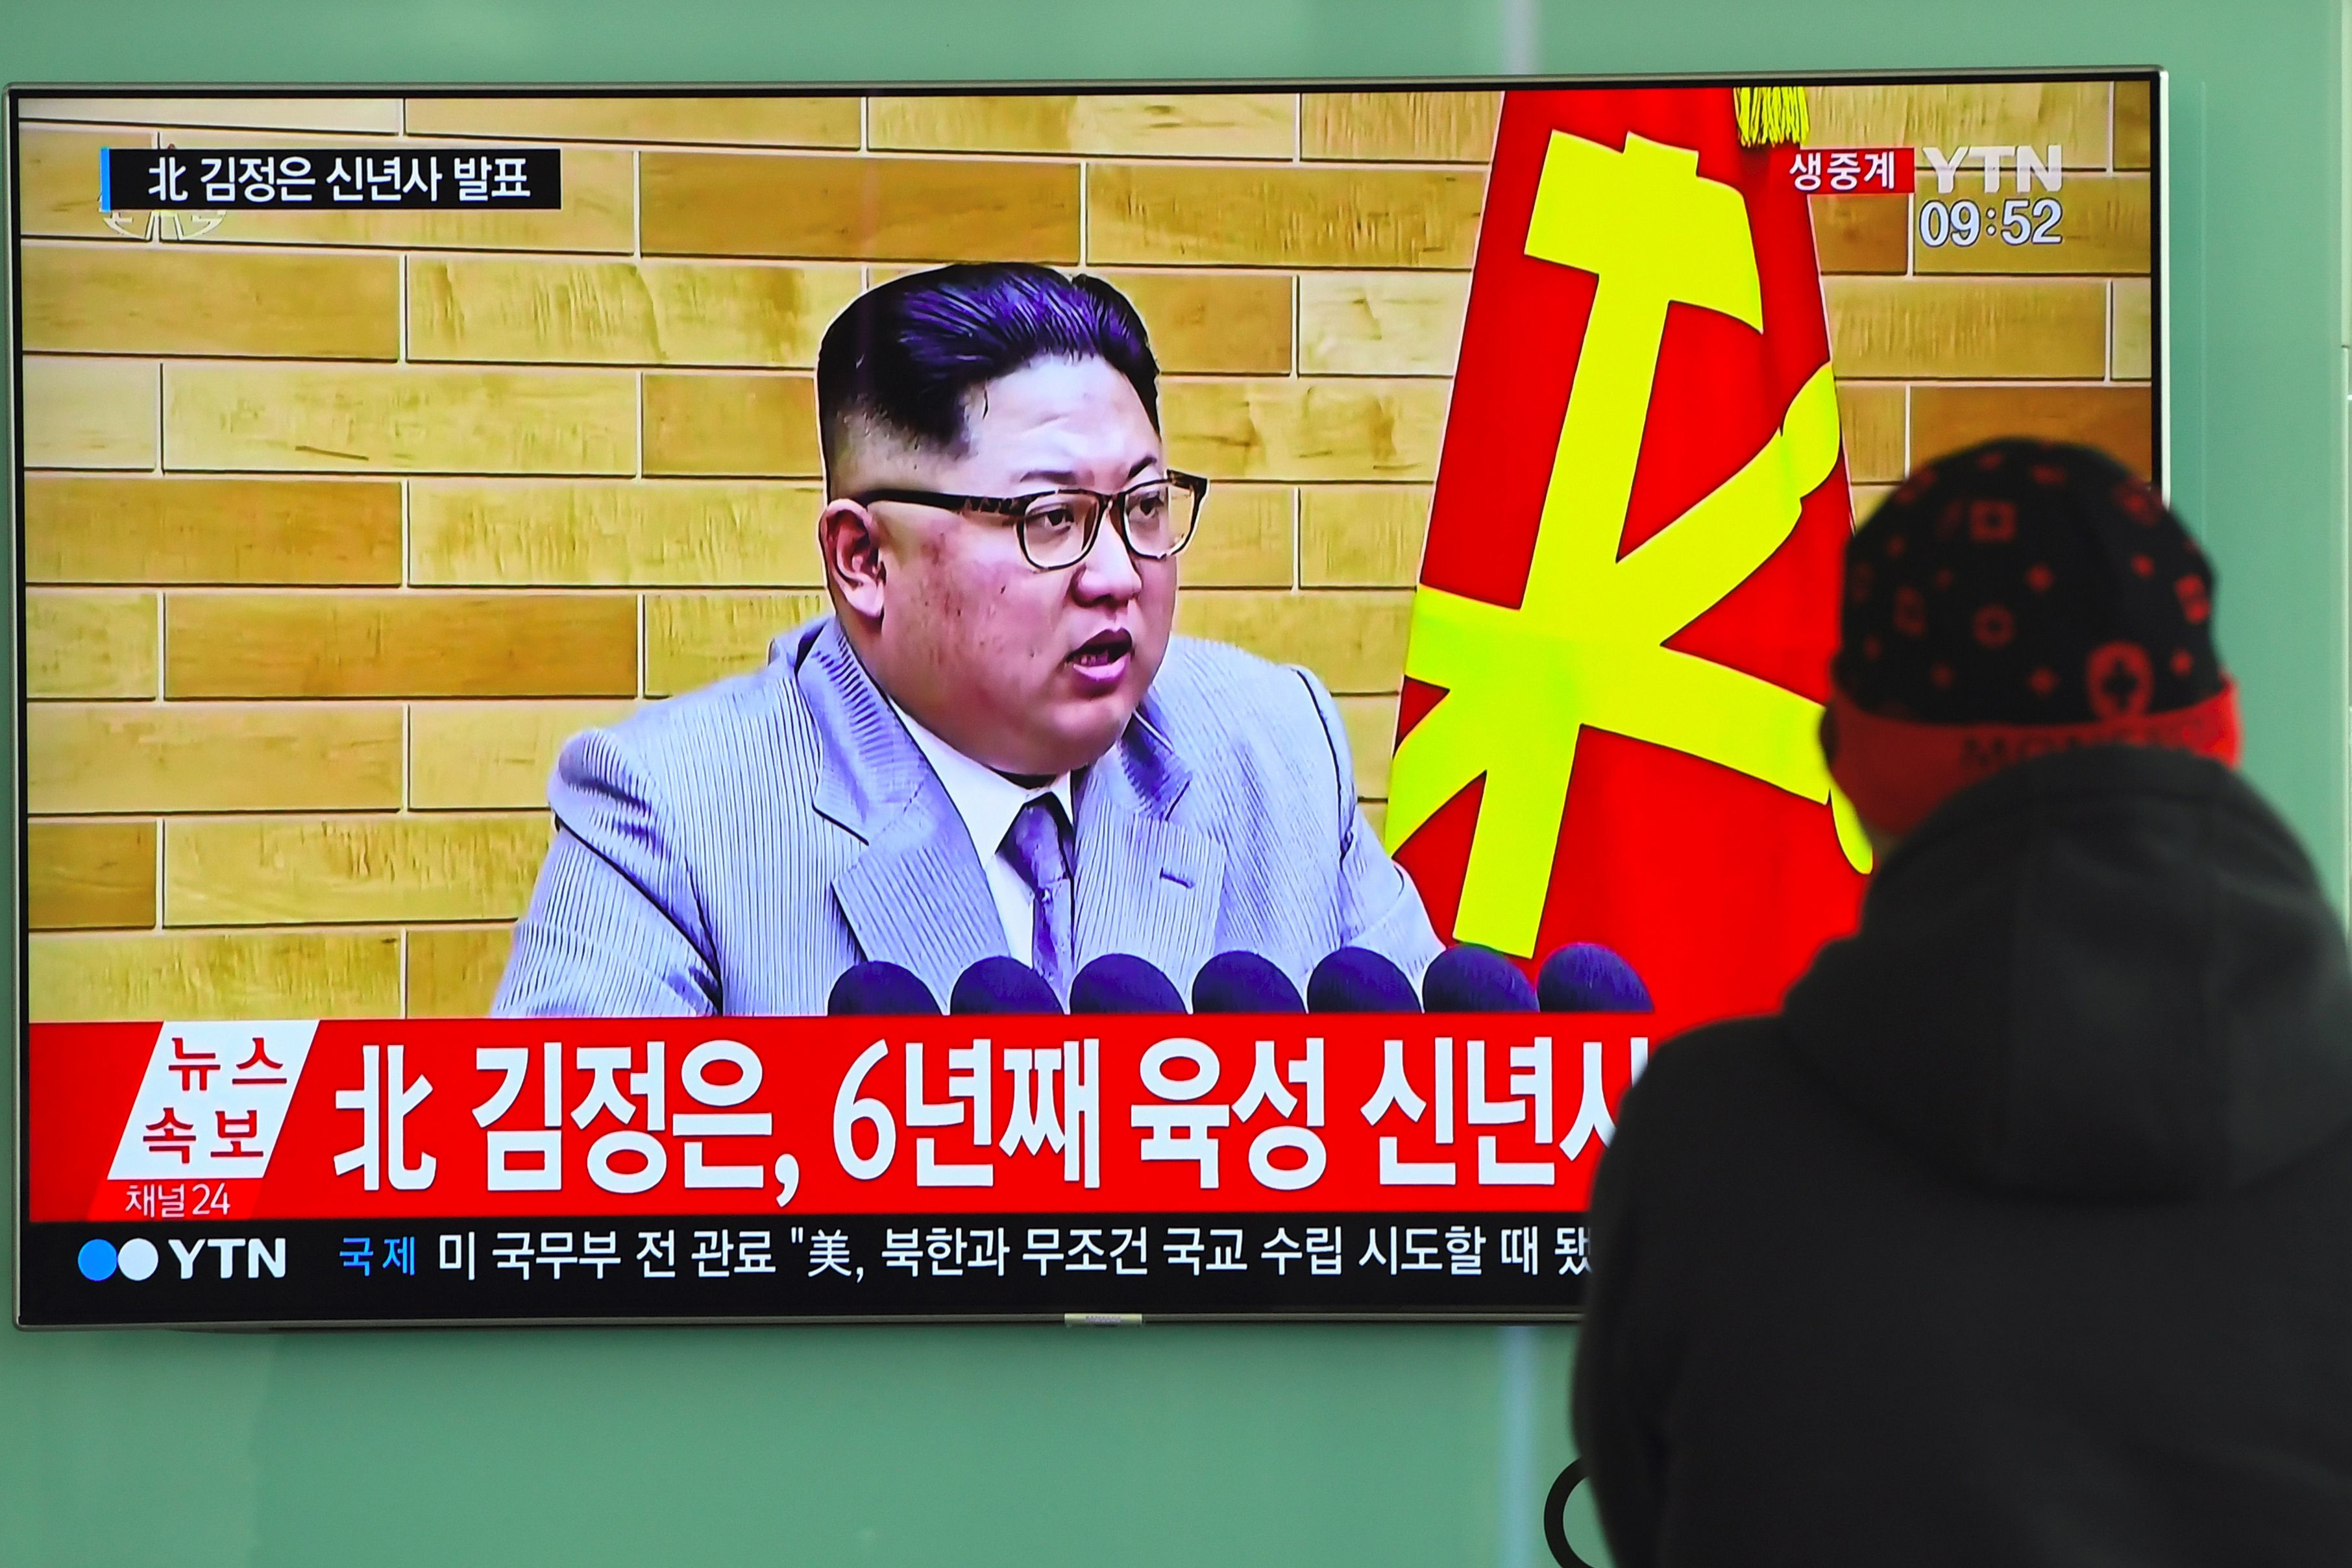 new year messages, New year, new year 2018, North Korea, Kim Jong, Nuclear, Nuclear Button